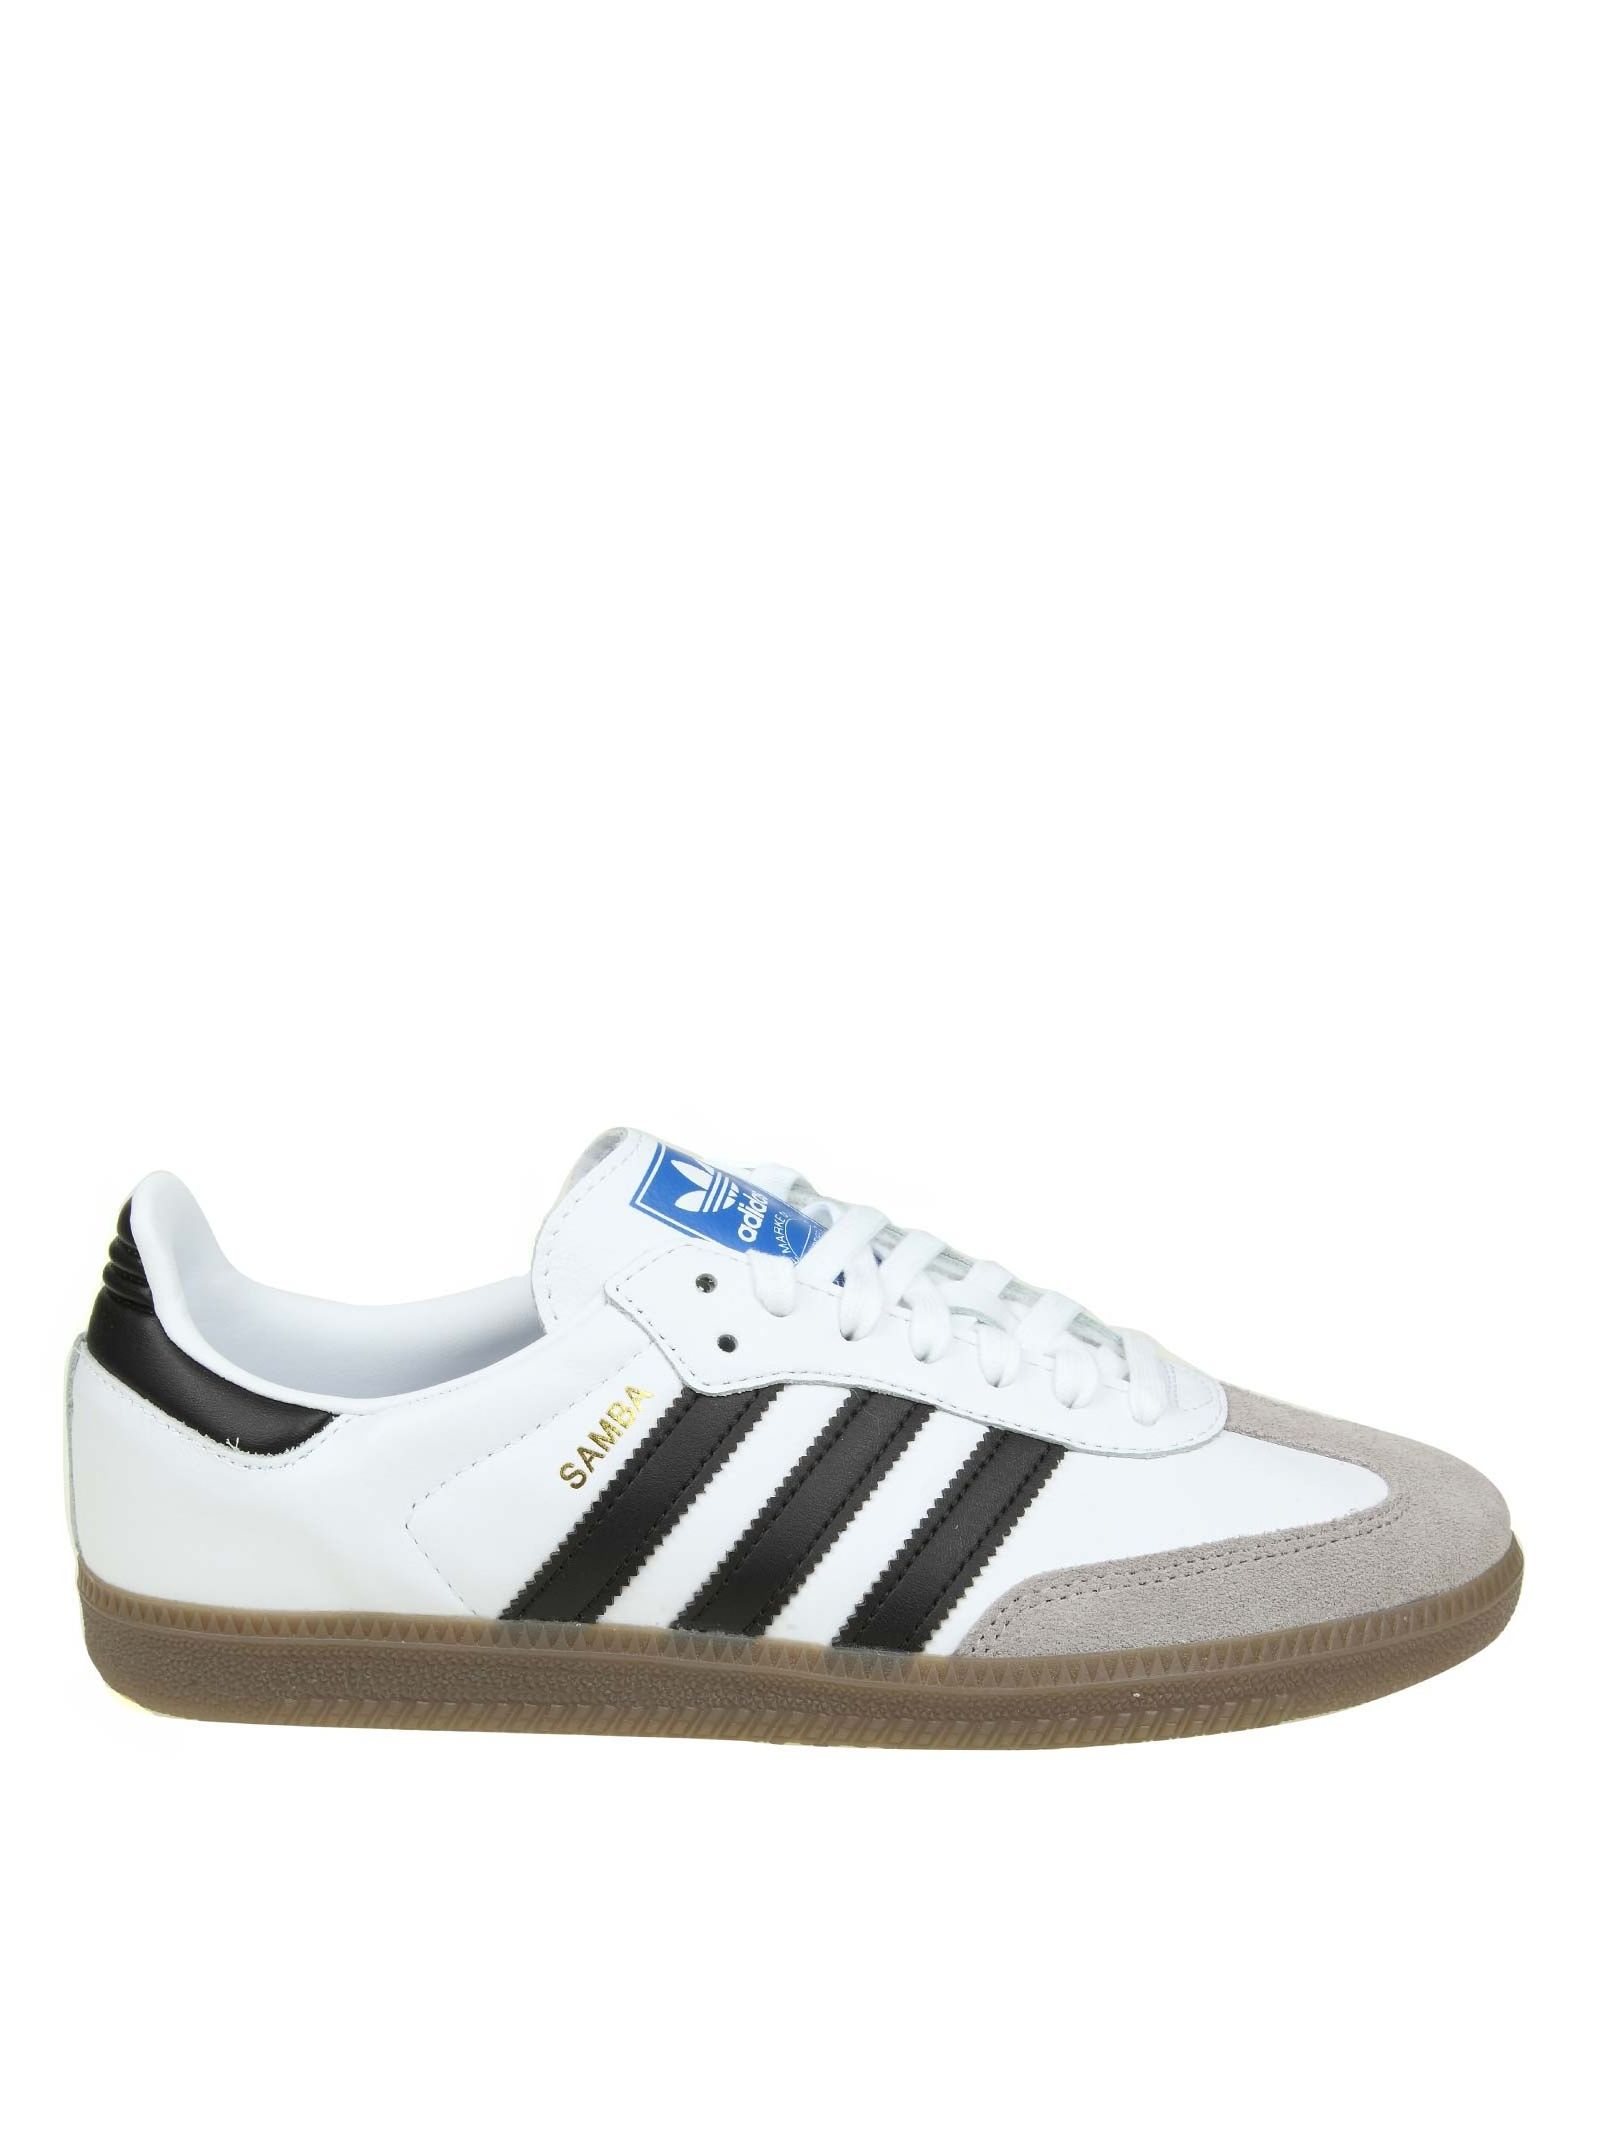 Adidas Originals Samba Og Sneakers In White Color Leather